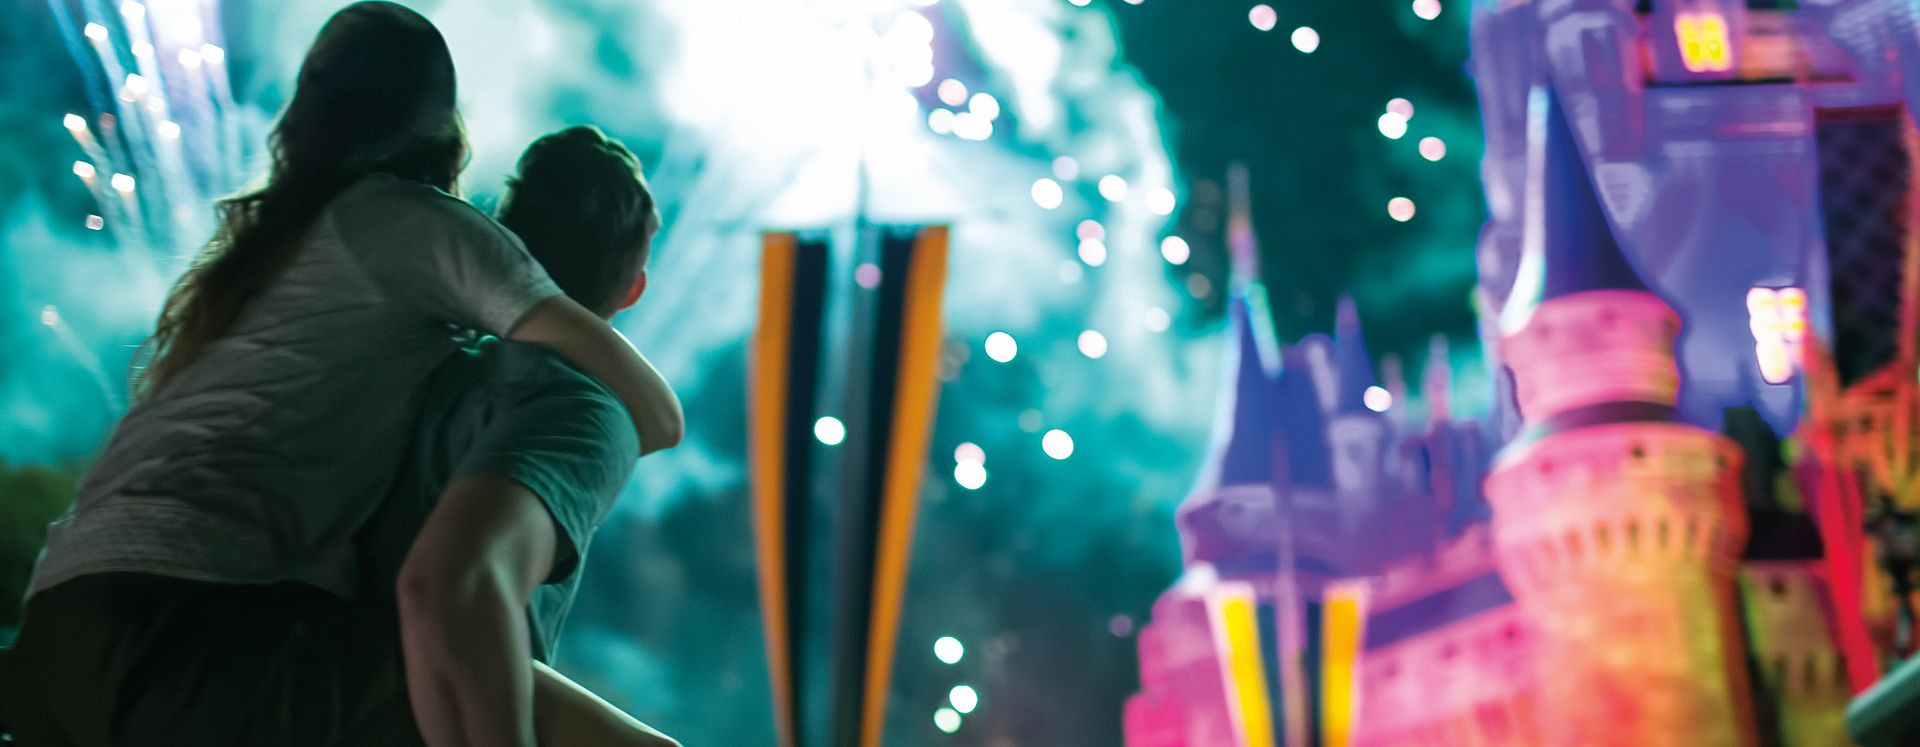 Parkgoers watching spectacular fireworks over Cinderella's Castle at Walt Disney World Resort